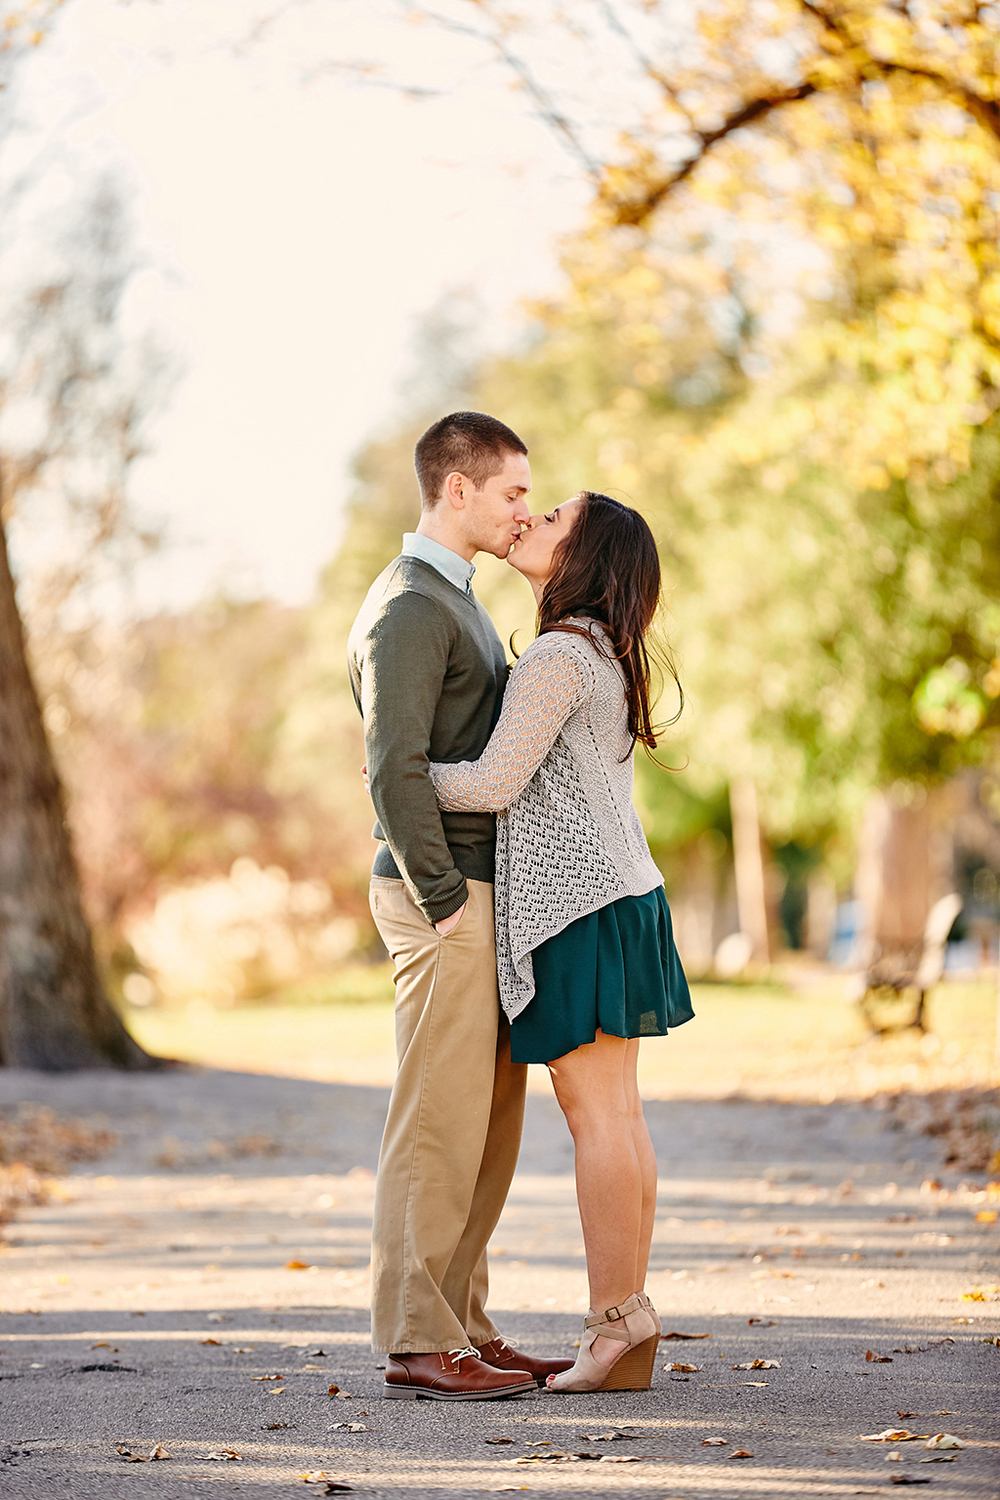 Tower Grove Park Engagement Session by St Louis Wedding Photographers Oldani Photography Tower Grove Park Engagement Session by St Louis Wedding Photographers Oldani Photography